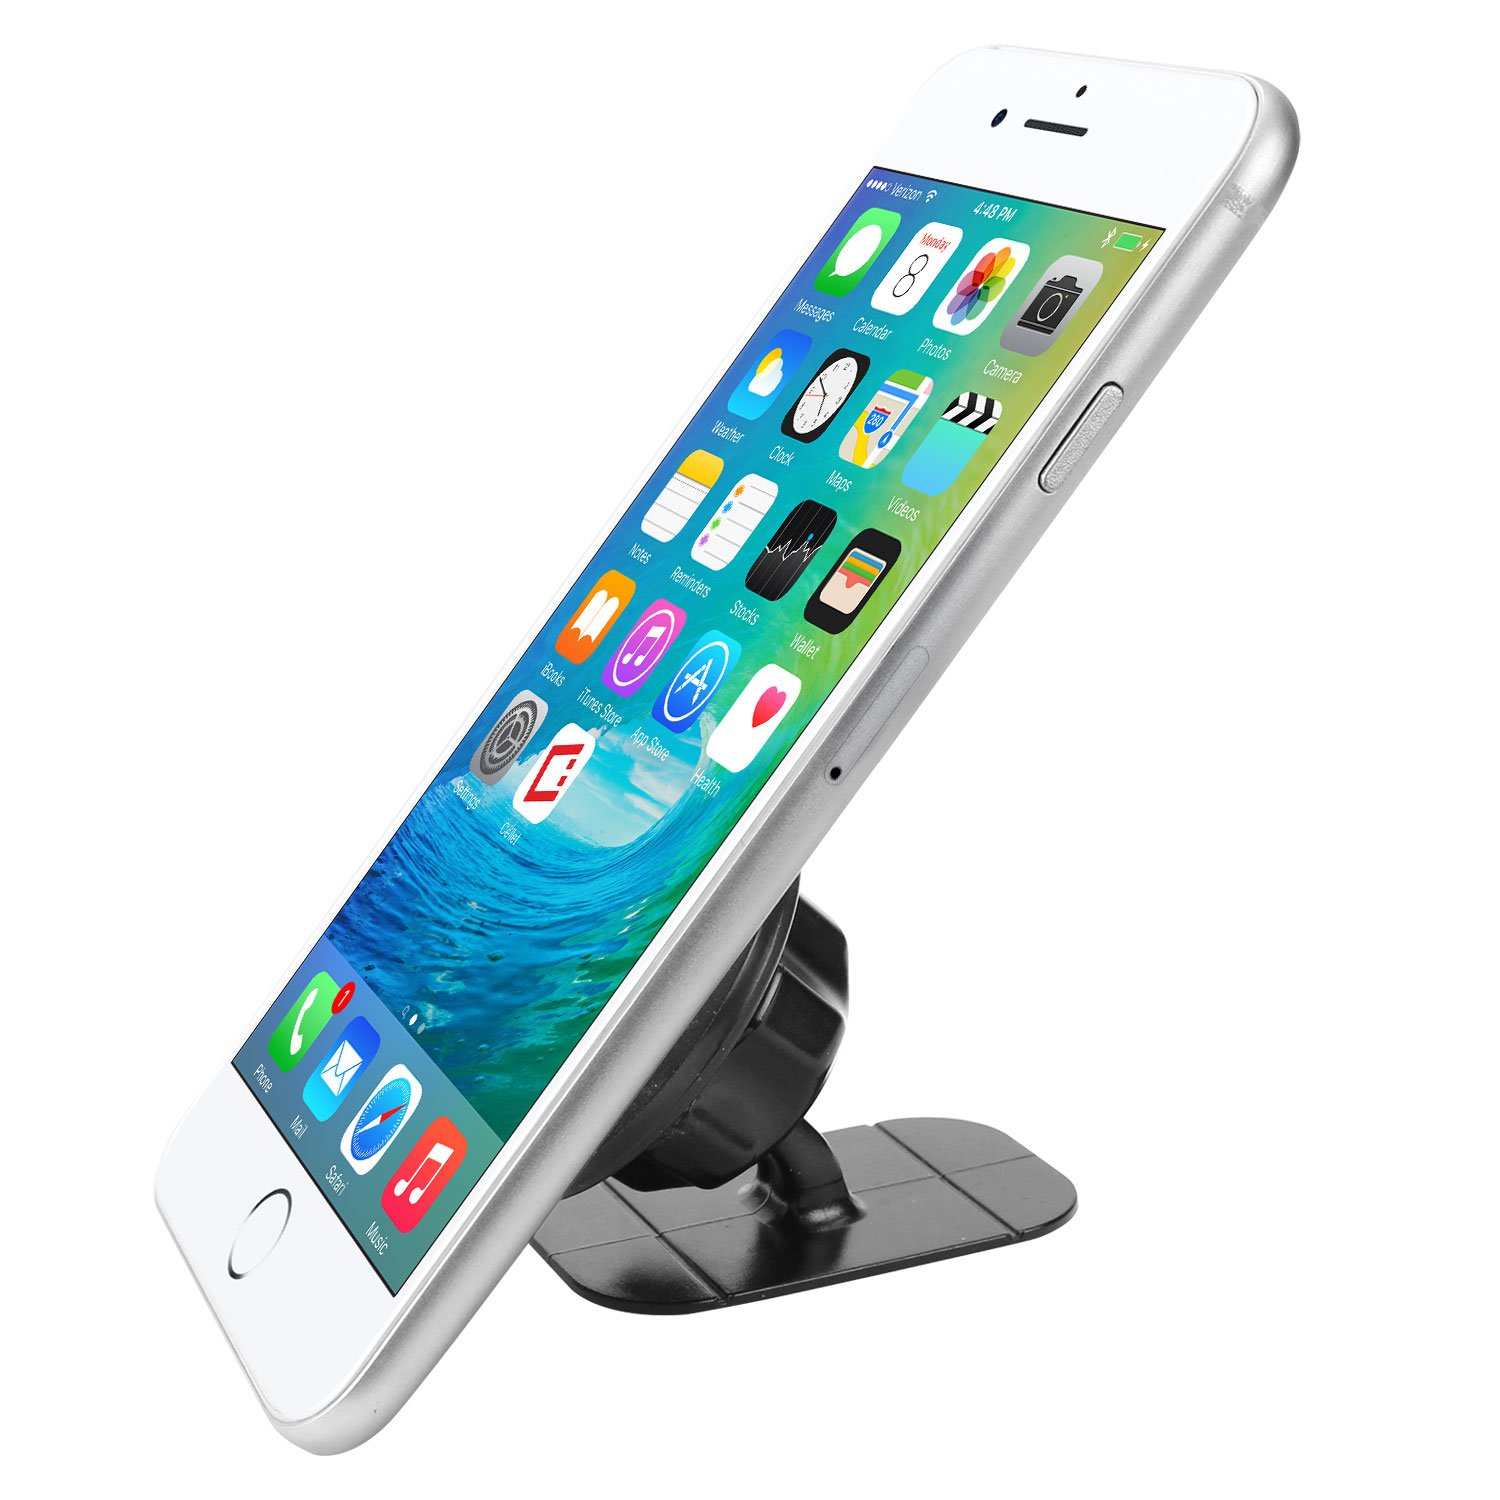 Magnetic Stick On Car Dash Mount Holder for LG Stylo 4 Stylo 2 Moto Z3//Z3 Play//E5 Plus//E5 Play//Moto G6//G6 Play//Moto G5S Plus//Moto X4//Z2 Force//E4 Plus//E4//Z2 Play Stylo 3 Cellet PHEM180 Car Mount